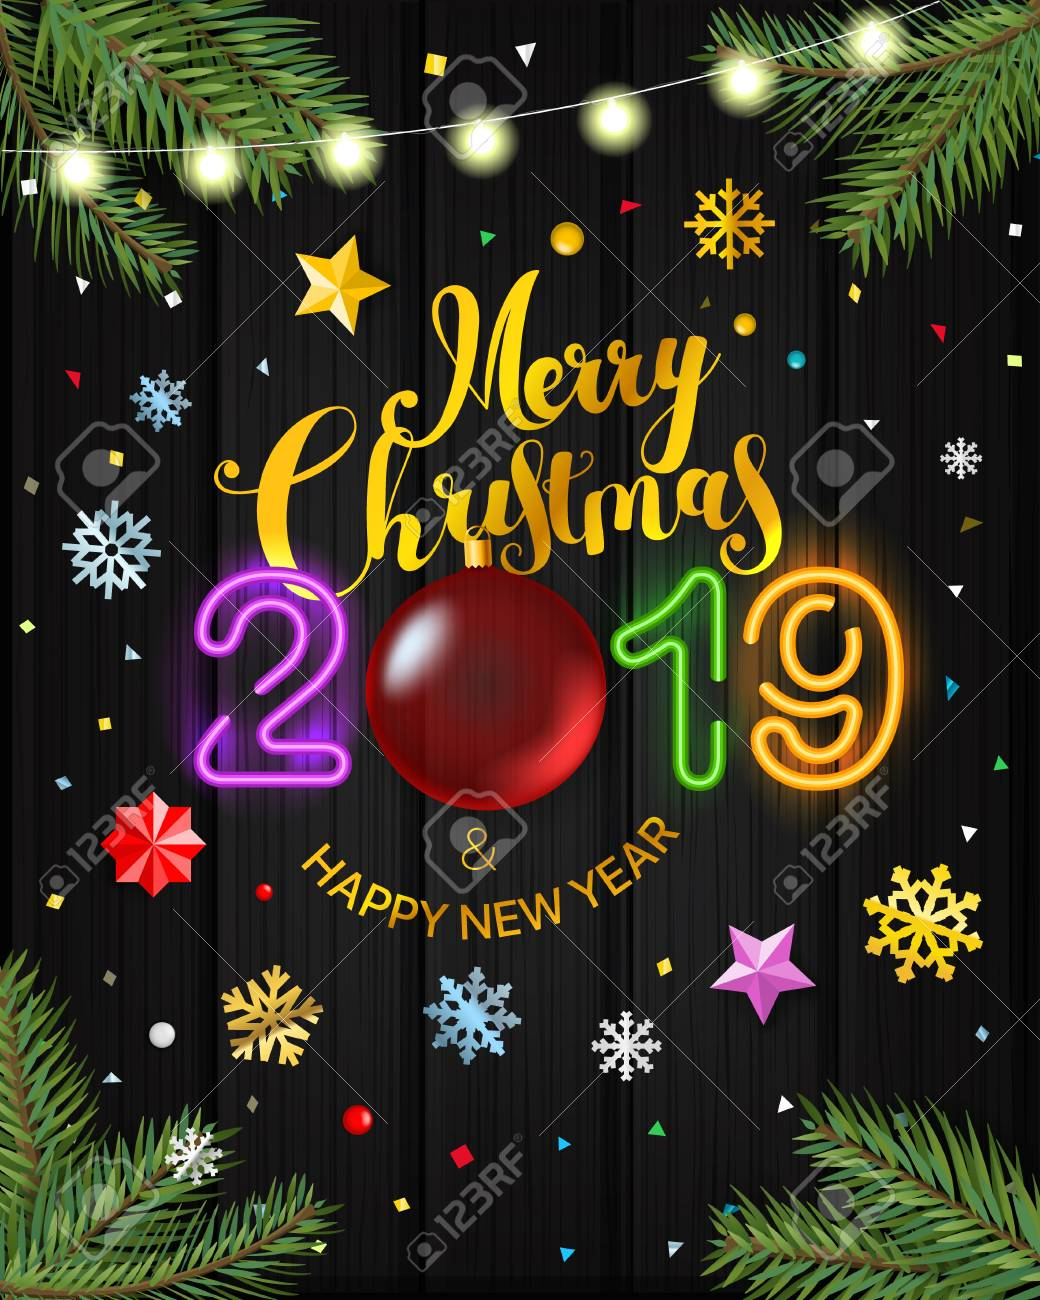 Merry Christmas 2019 Wishes Merry Christmas And Happy New Year 2019 Greeting Vector Card